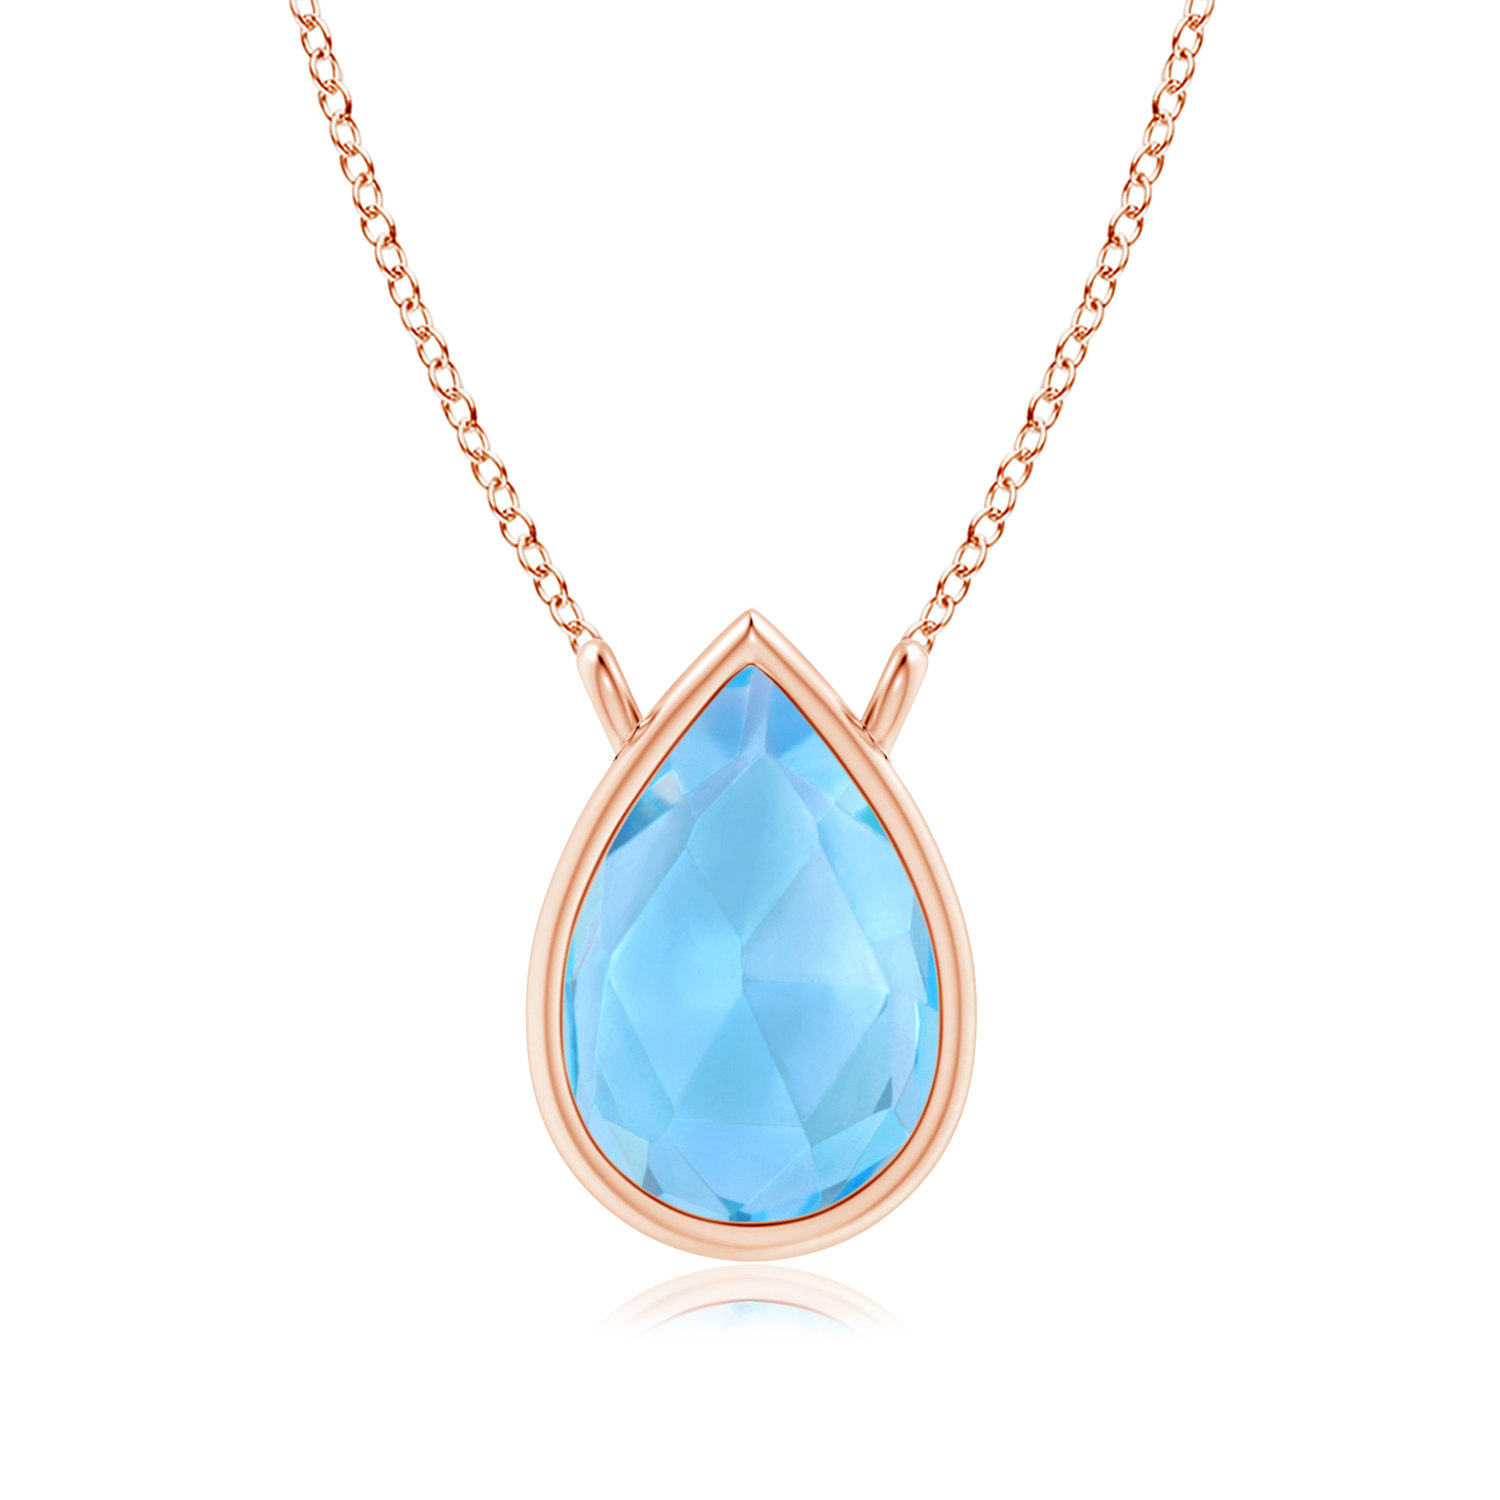 November Birthstone Pendant Necklaces Pear-Shaped Swiss Blue Topaz Solitaire Necklace in 14K Rose Gold (6x4mm Swiss Blue... by Angara.com